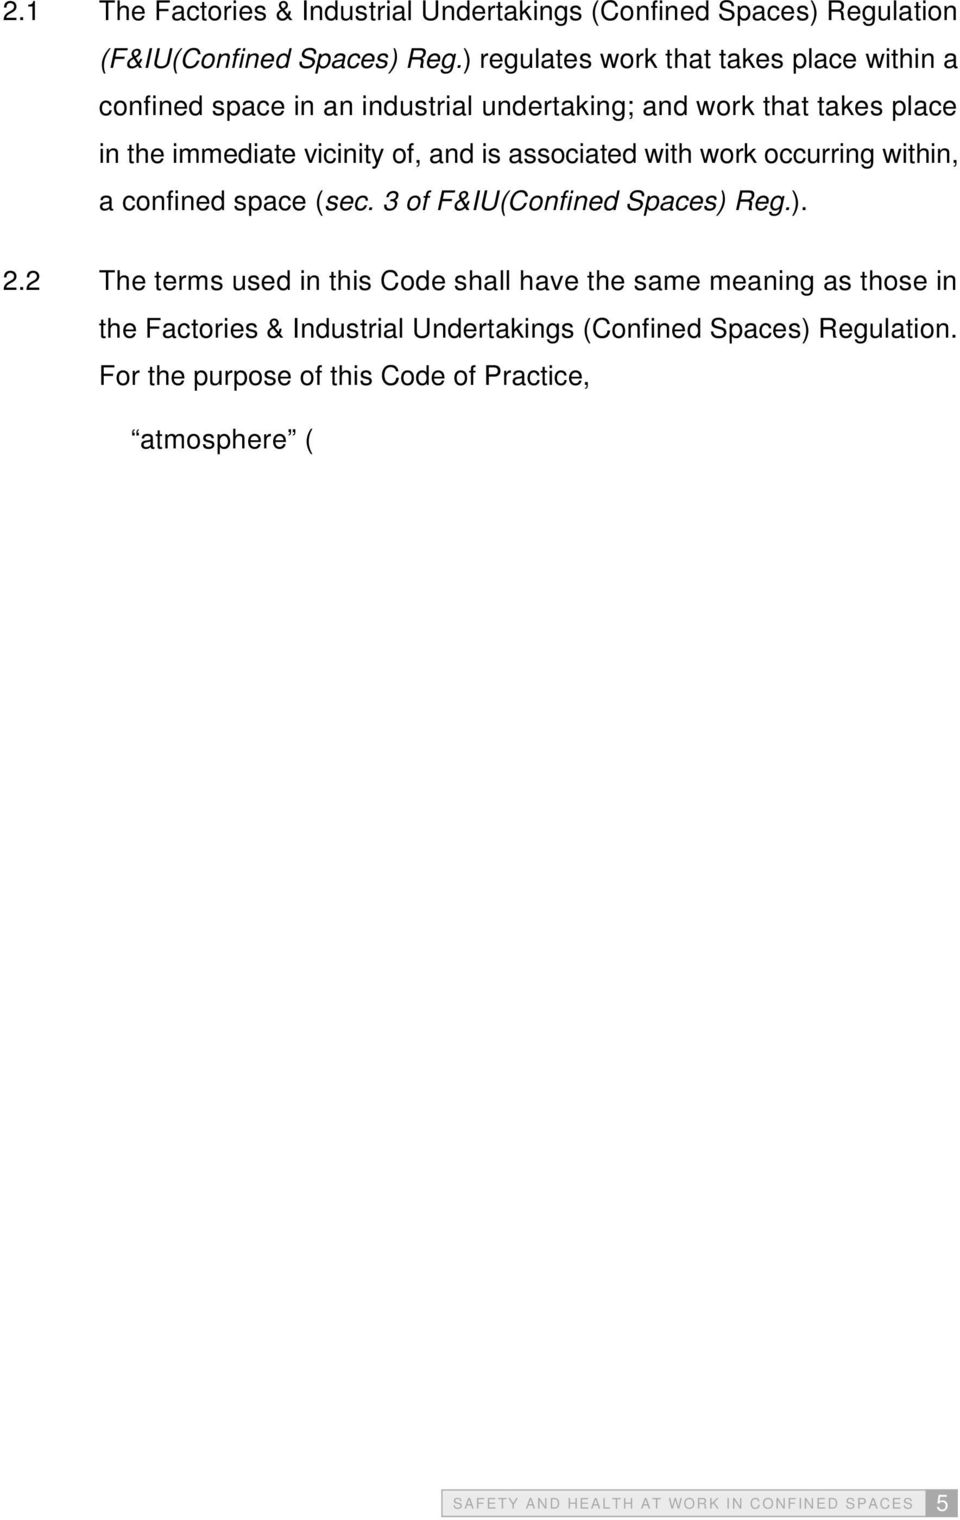 confined space (sec. 3 of F&IU(Confined Spaces) Reg.). 2.2 The terms used in this Code shall have the same meaning as those in the Factories & Industrial Undertakings (Confined Spaces) Regulation.